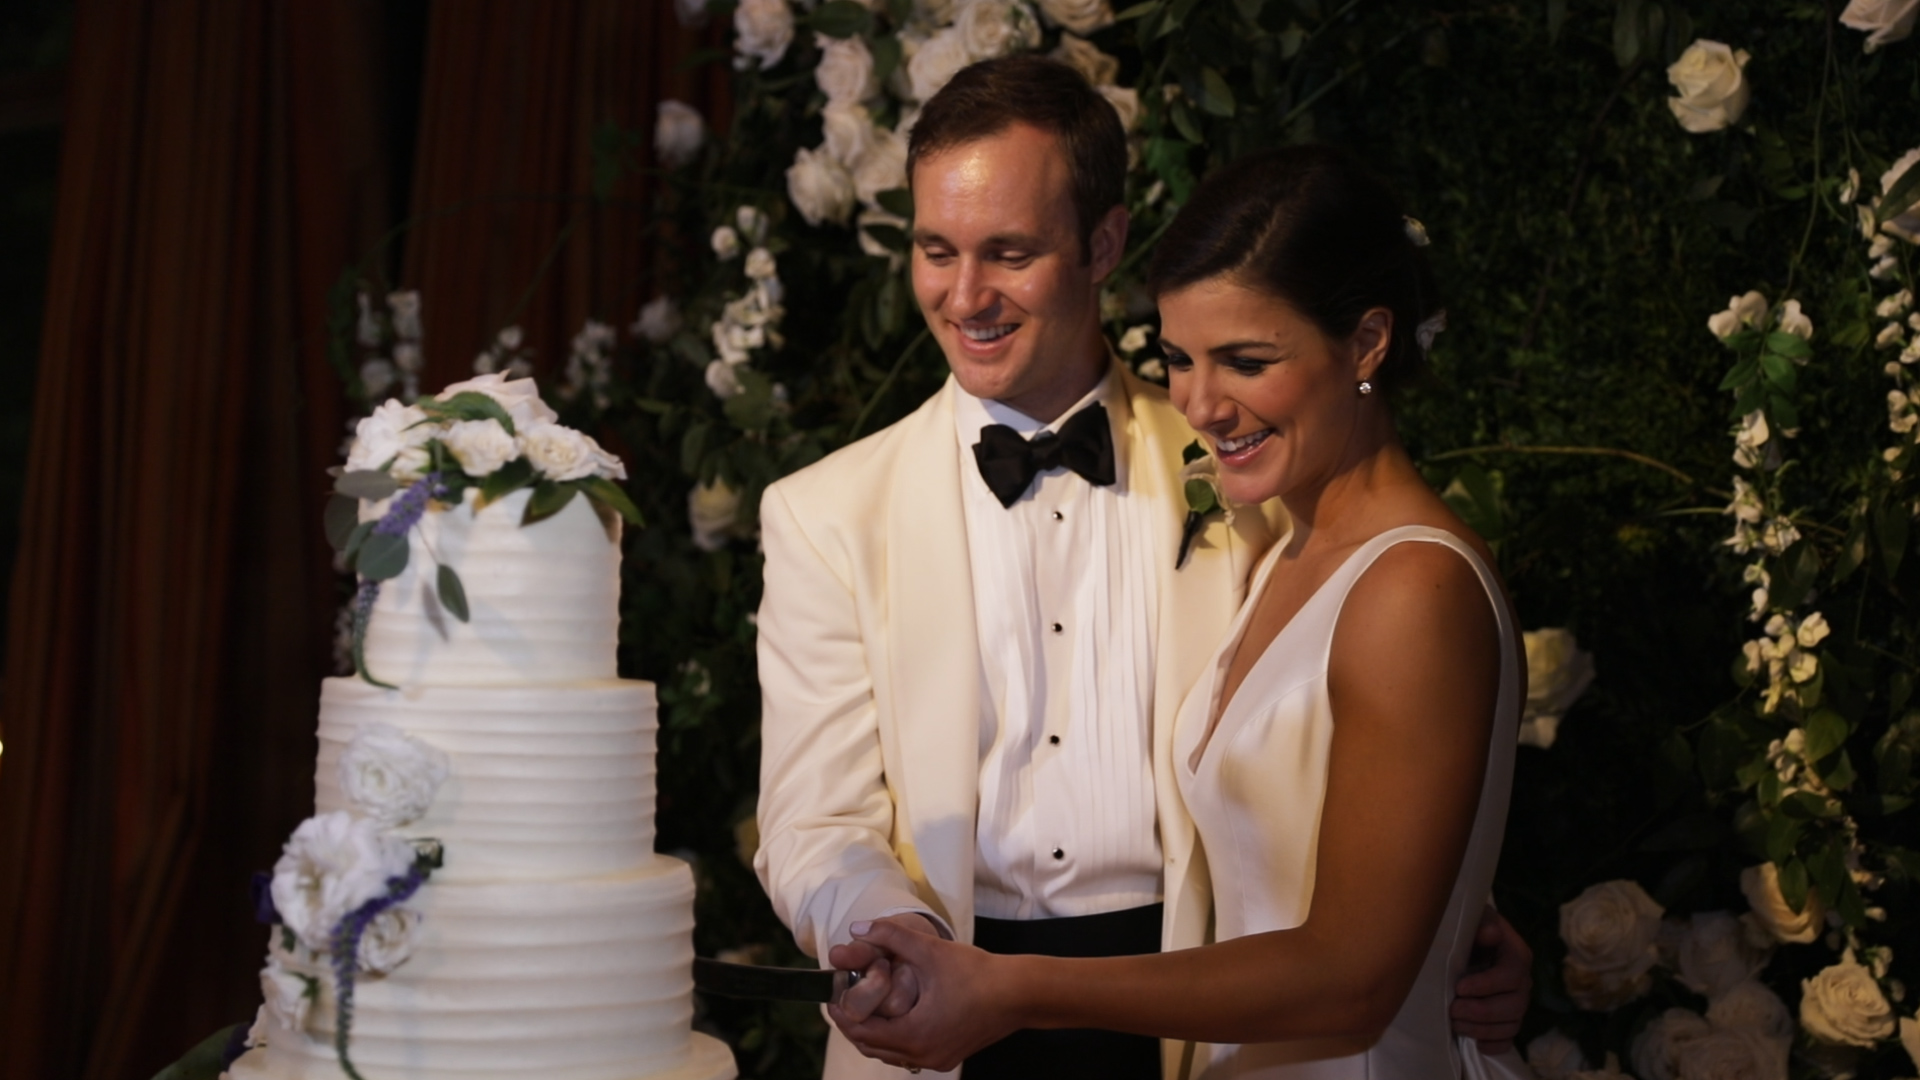 New Orleans Wedding Video_Sibyl and Charles_Wedding Cake Cutting